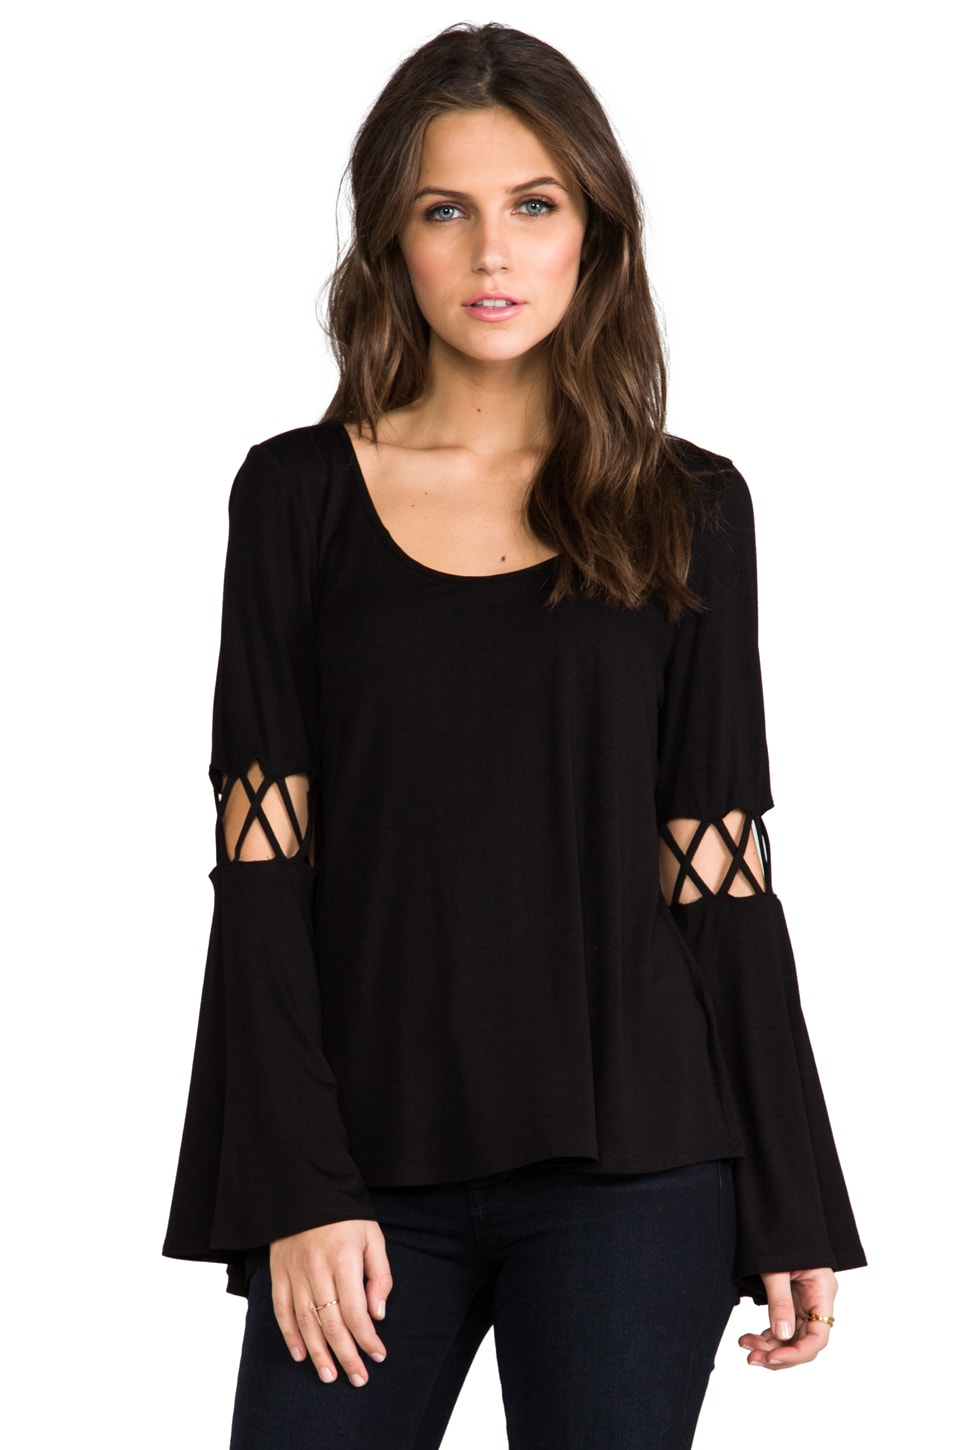 James & Joy Dixie Top in Black